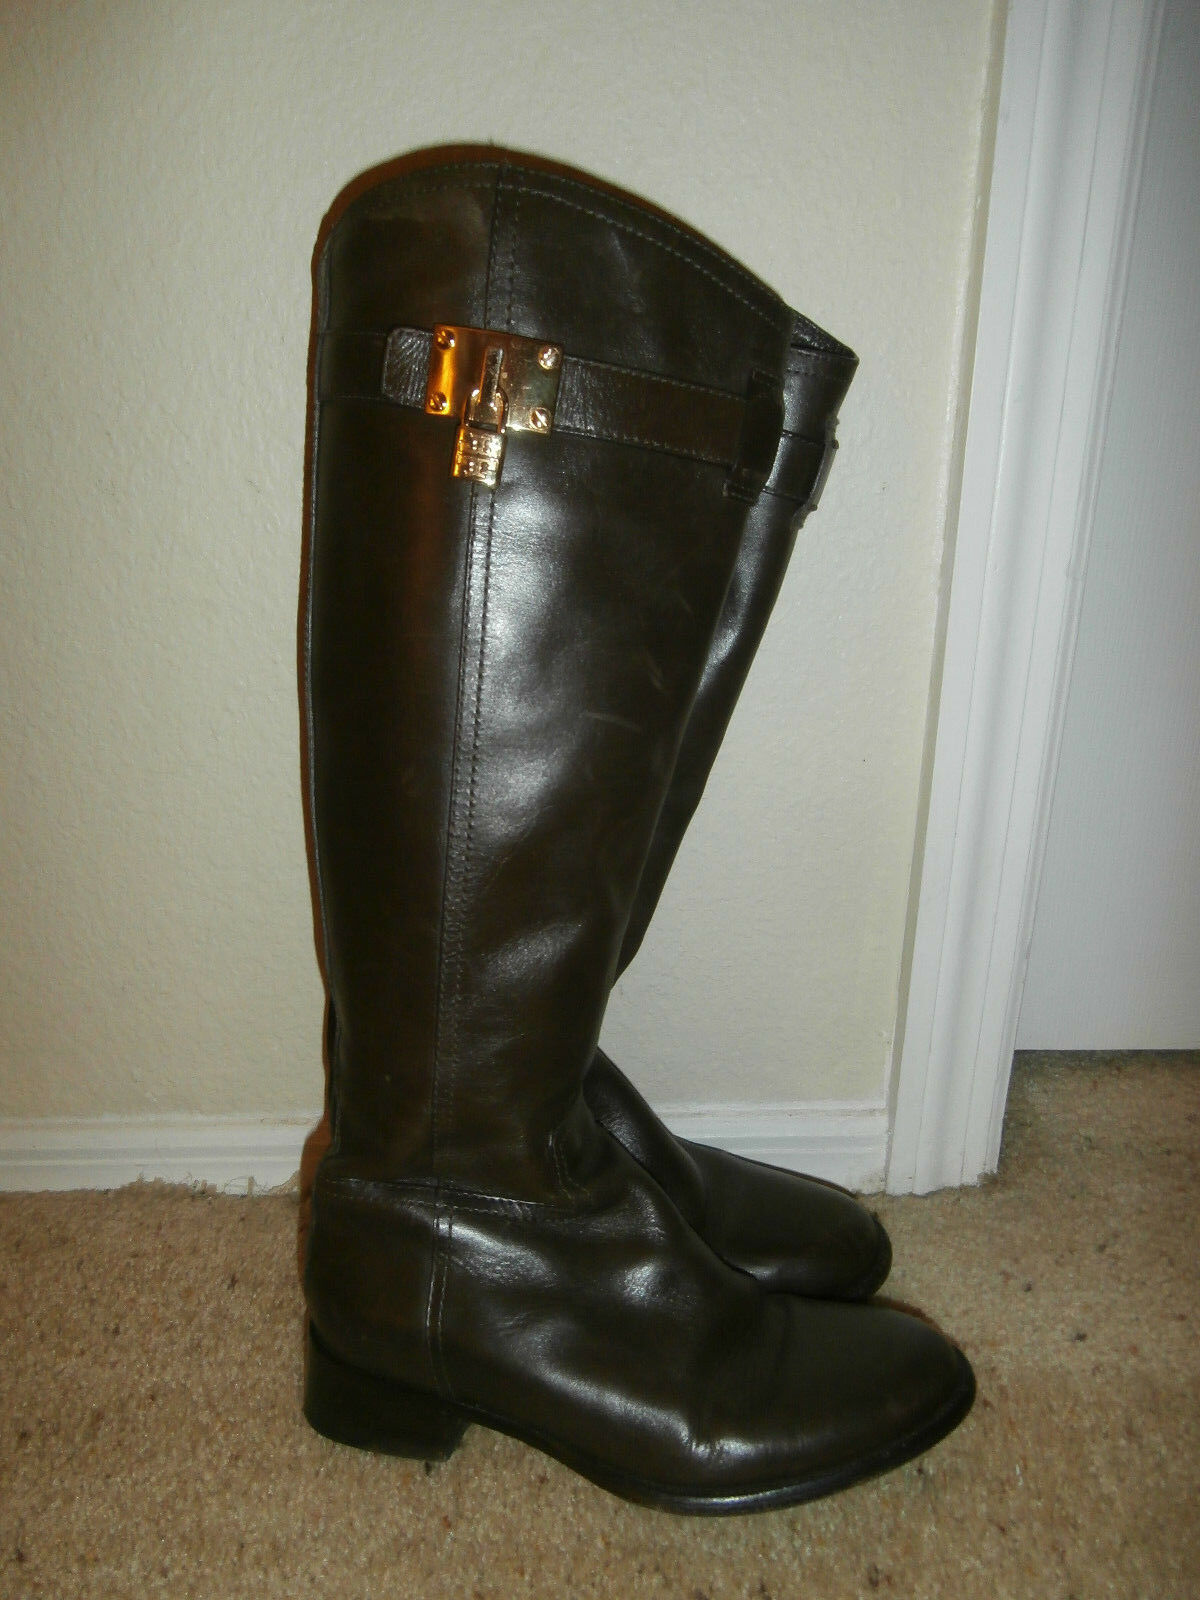 Tory Burch Riding Boots Brown Leather SZ 6.5  MINT  LIAM BOOT & NEW TB DUST BAG